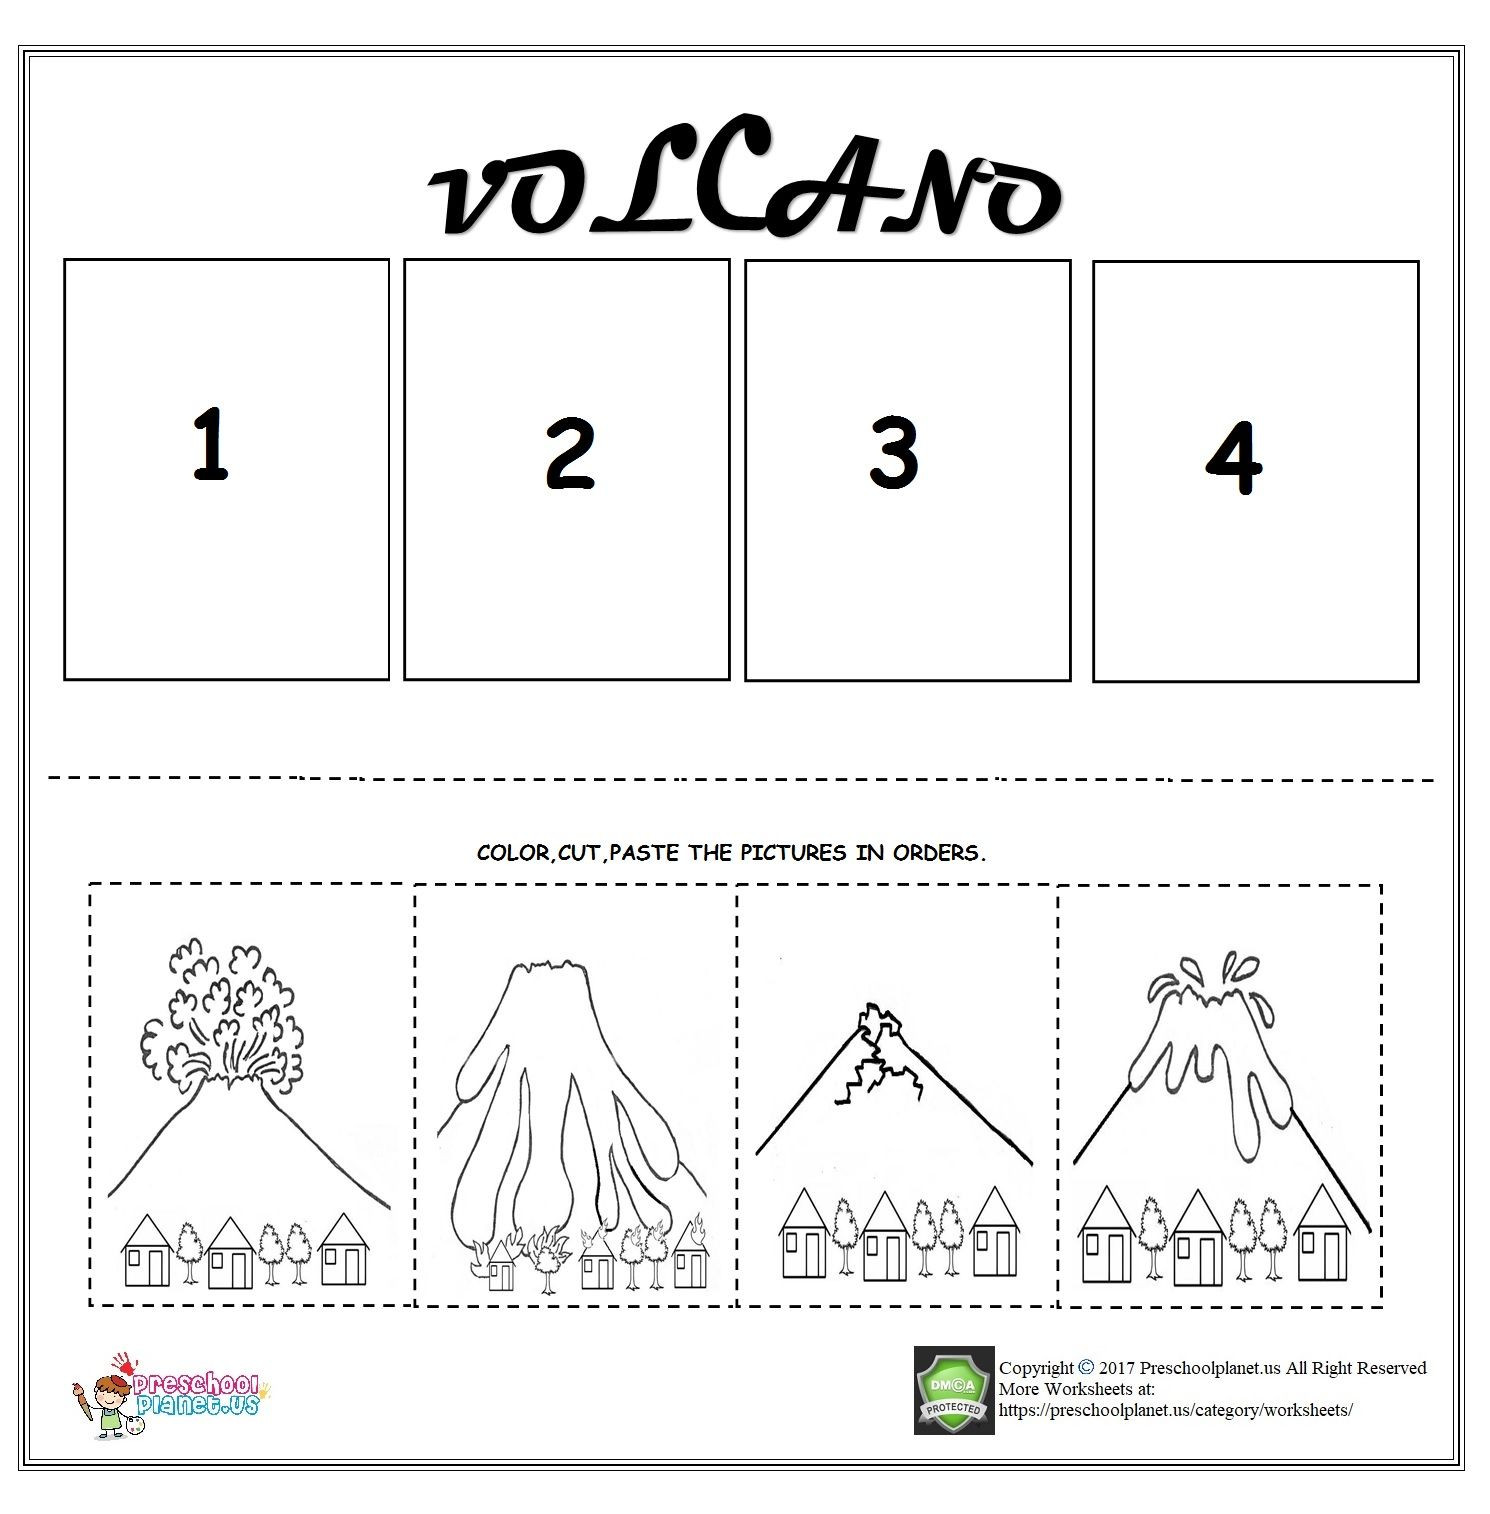 Sequencing Worksheet First Grade Volcano Sequencing Worksheet for Kids